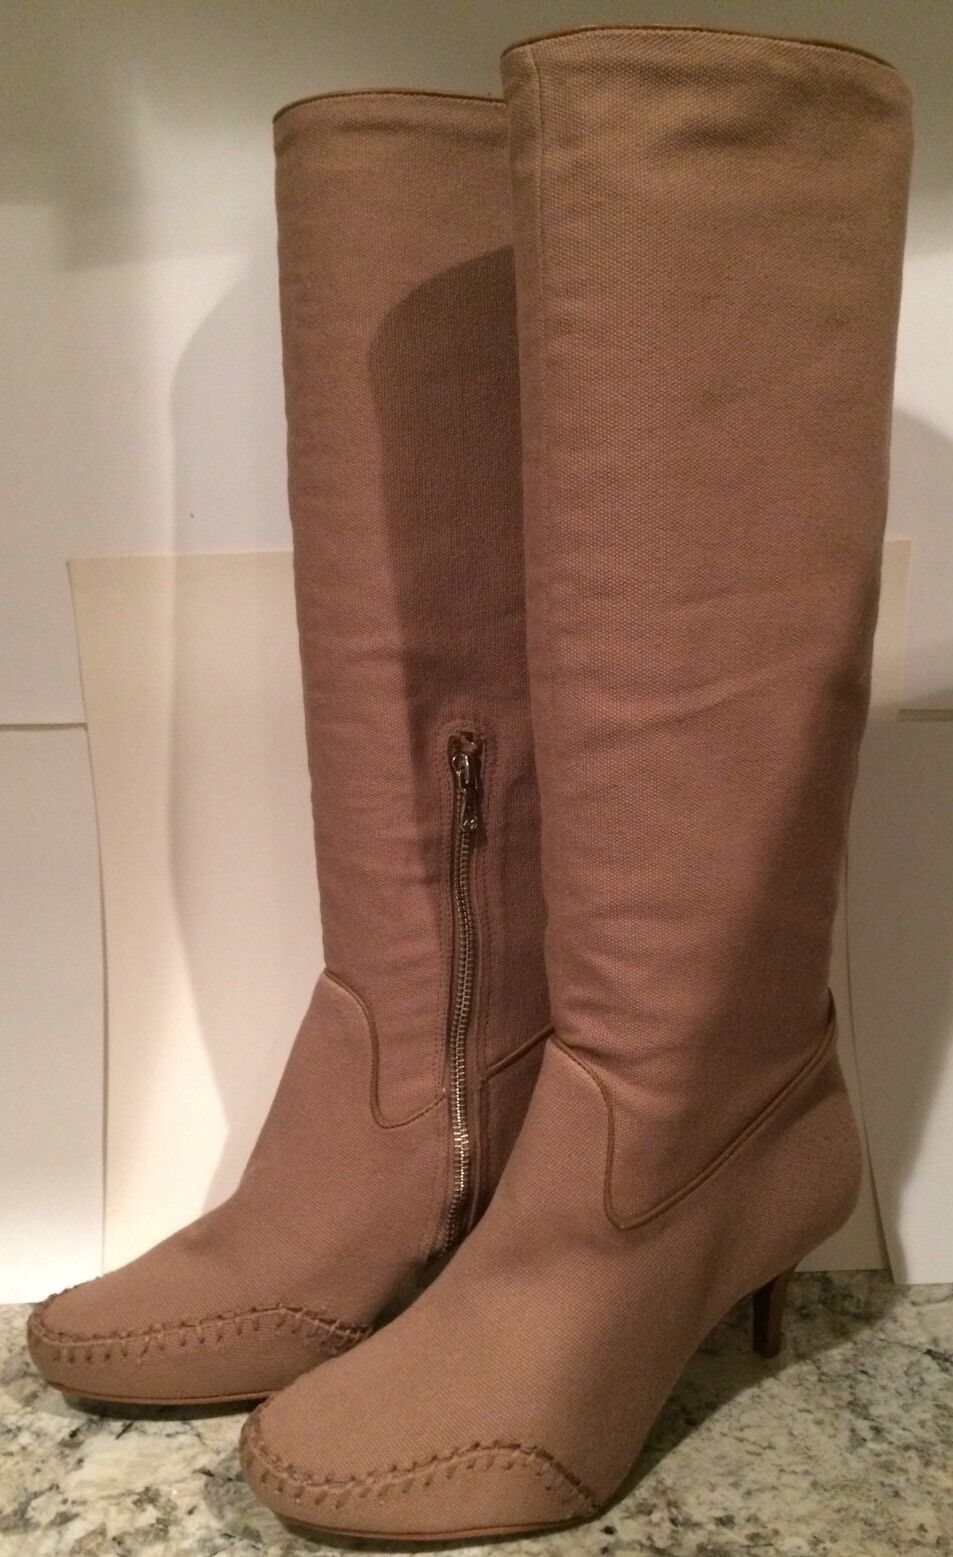 Max Azria Lexy Knee High Stiefel Leder Canvas Heels ( BCBG ) Taupe 39/8.5 Nice